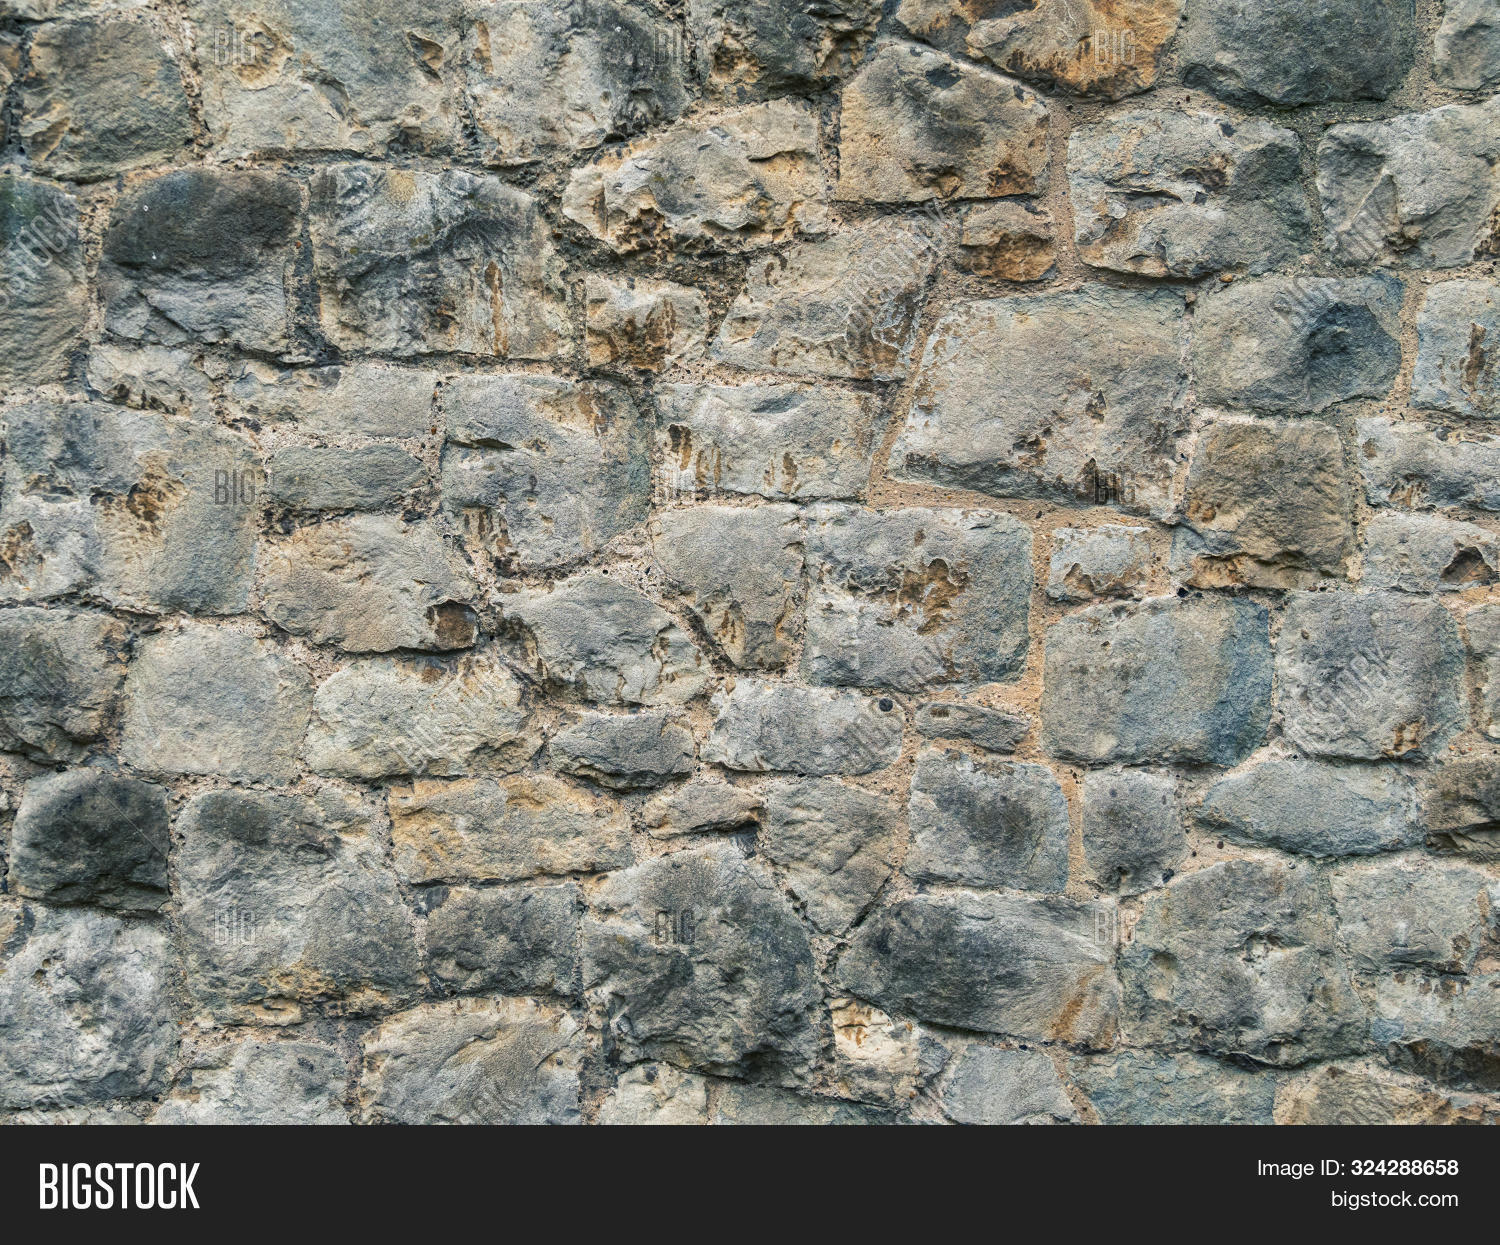 abstract,ancient,backdrop,background,blank,block,brick,brown,built,citadel,closeup,coarse,cobble,cobblestone,color,construction,dirty,exterior,fortification,gray,grey,handmade,masonry,medieval,mosaic,nature,obsolete,old,past,pattern,pave,paving,rock,rough,stone,stonewall,stonework,stony,strength,structure,template,texture,textured,wall,walling,wallpaper,weathered